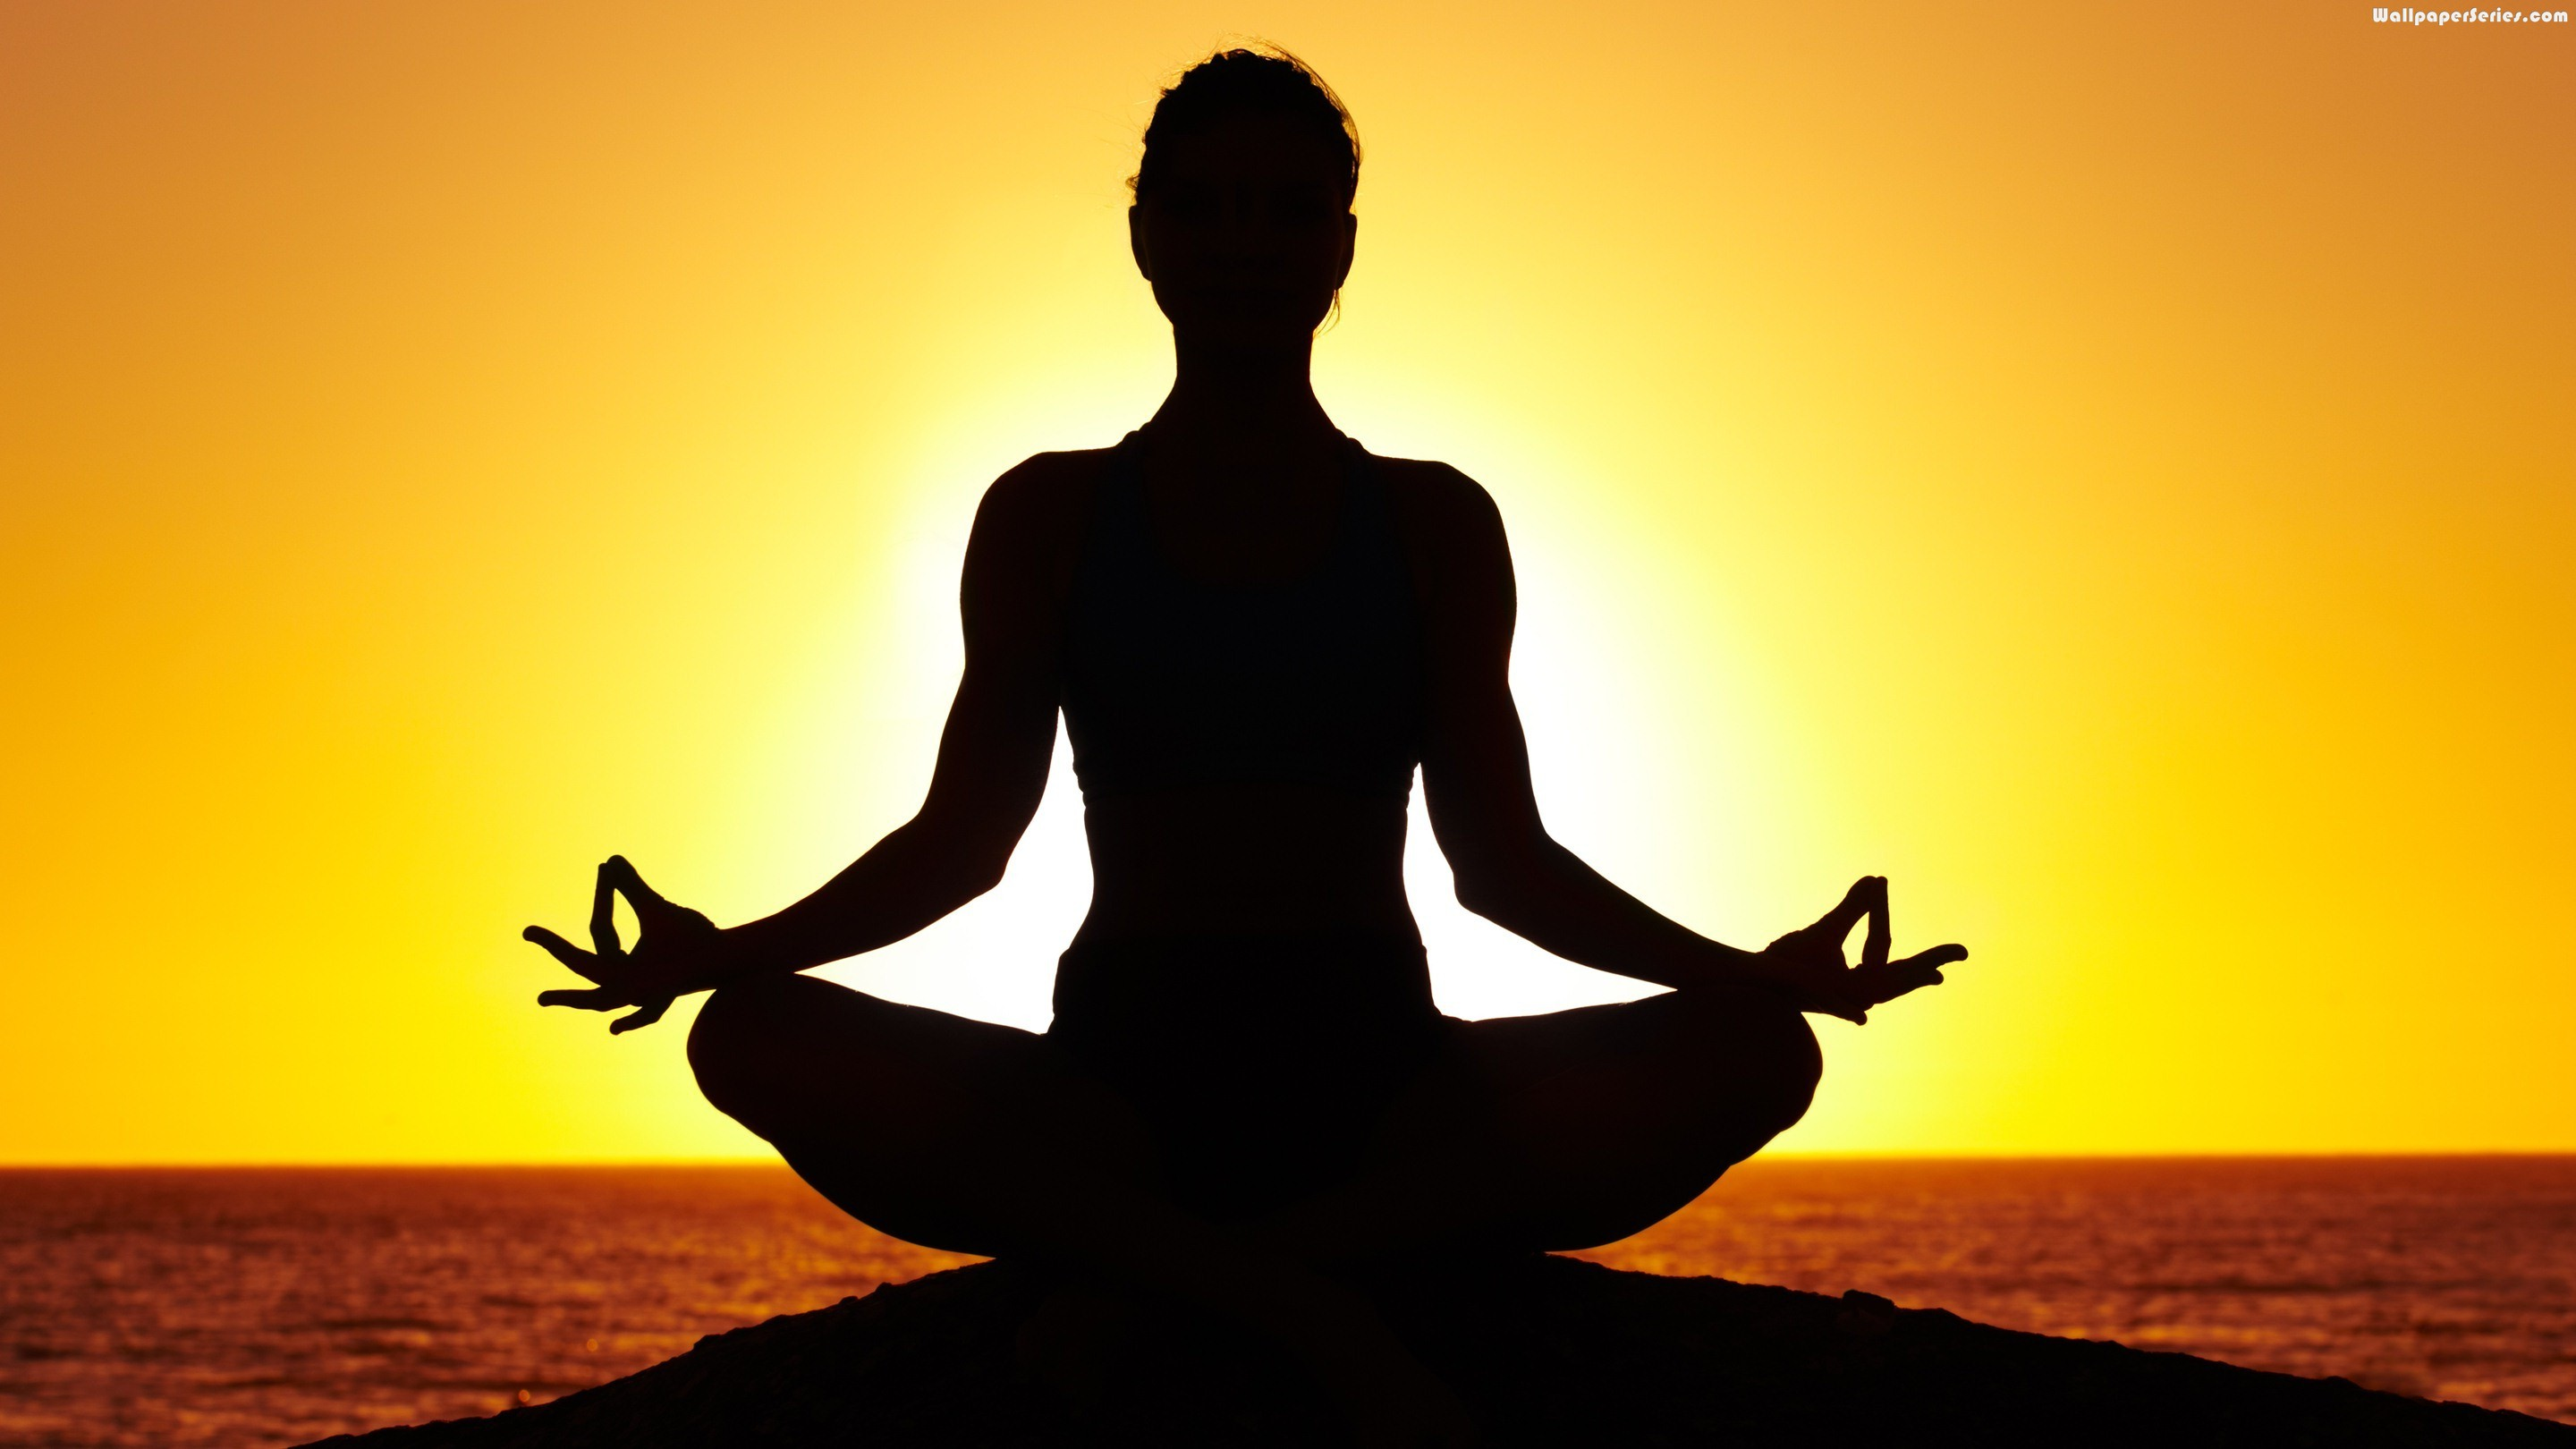 For Your Desktop: Yoga Wallpapers, 47 Top Quality Yoga Wallpapers